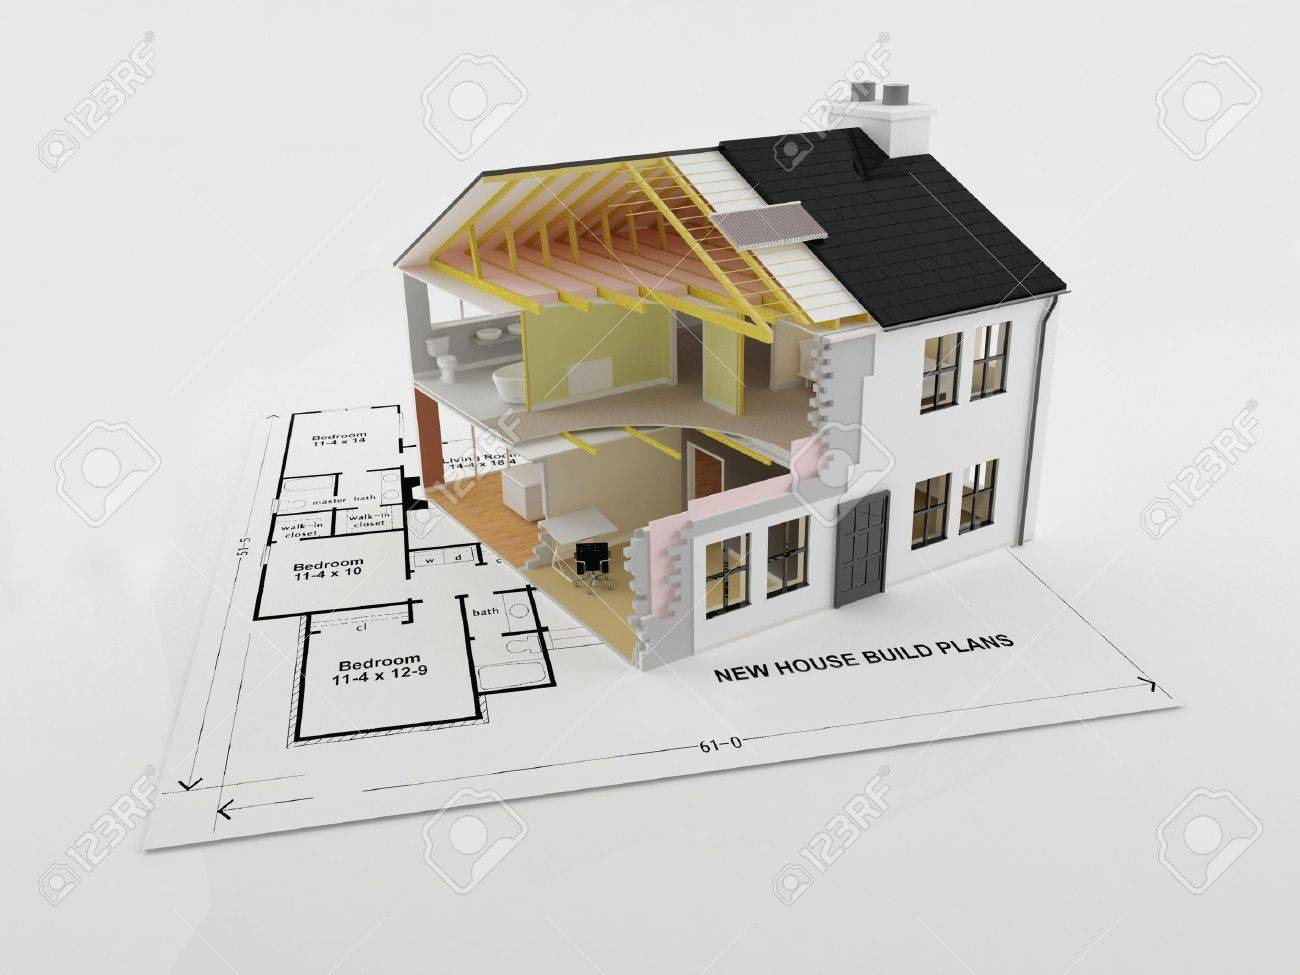 Building an energy efficient house model